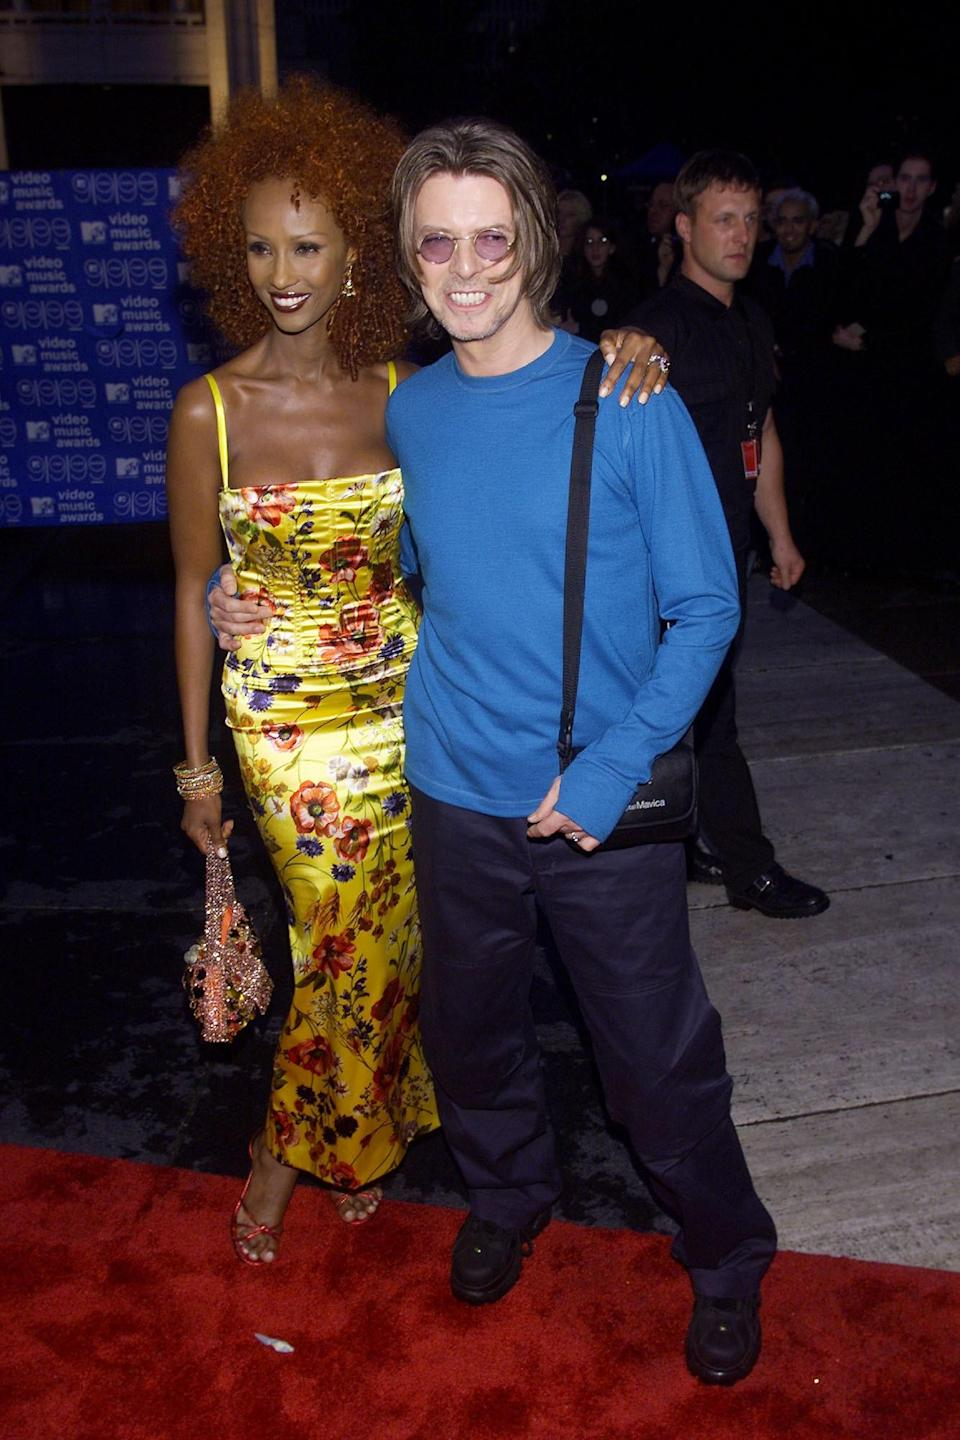 Long before Miranda Priestly schooled us on cerulean blue, David Bowie was wearing it on the red carpet. He clearly downplayed his fashion sense to let wife, supermodel, and now style mogul Iman radiate. Her floral number and red afro were beyond.